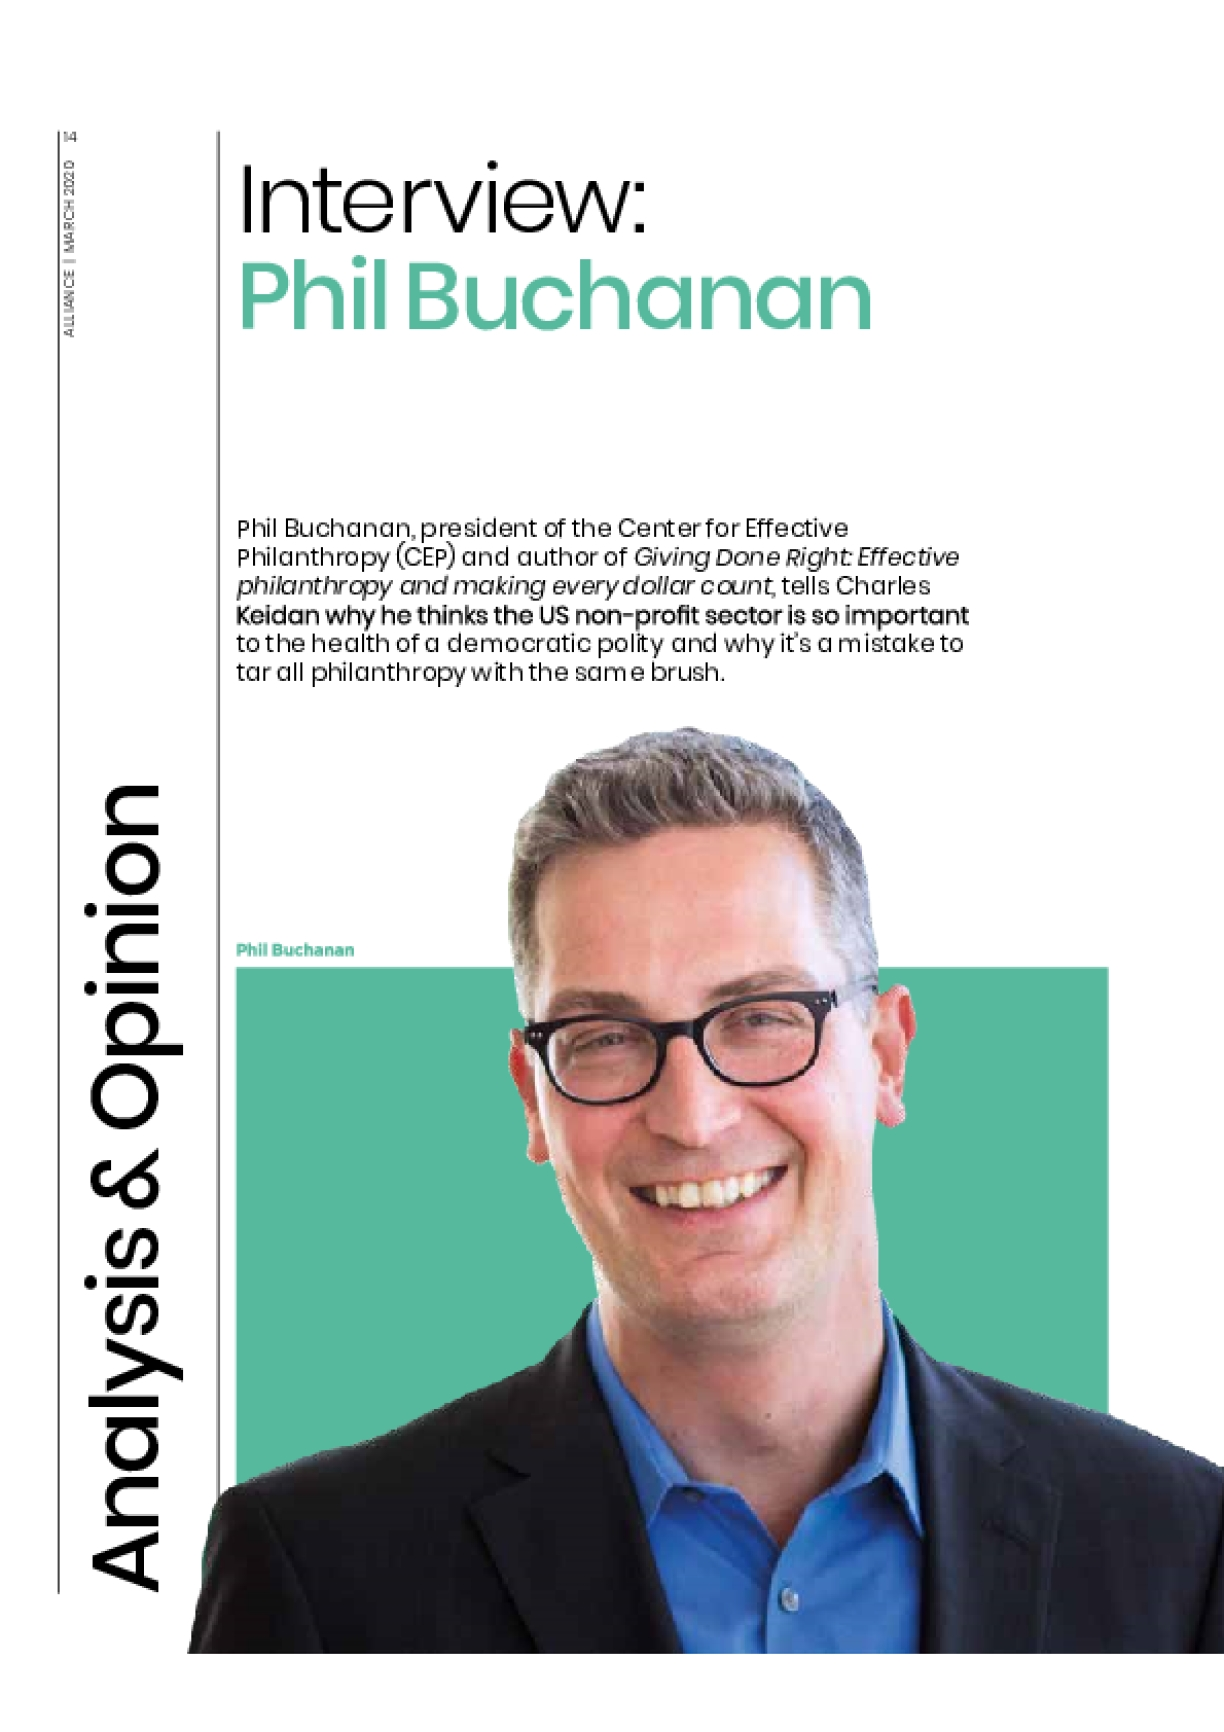 Interview: Phil Buchanan - Non-profits are unsung and undervalued